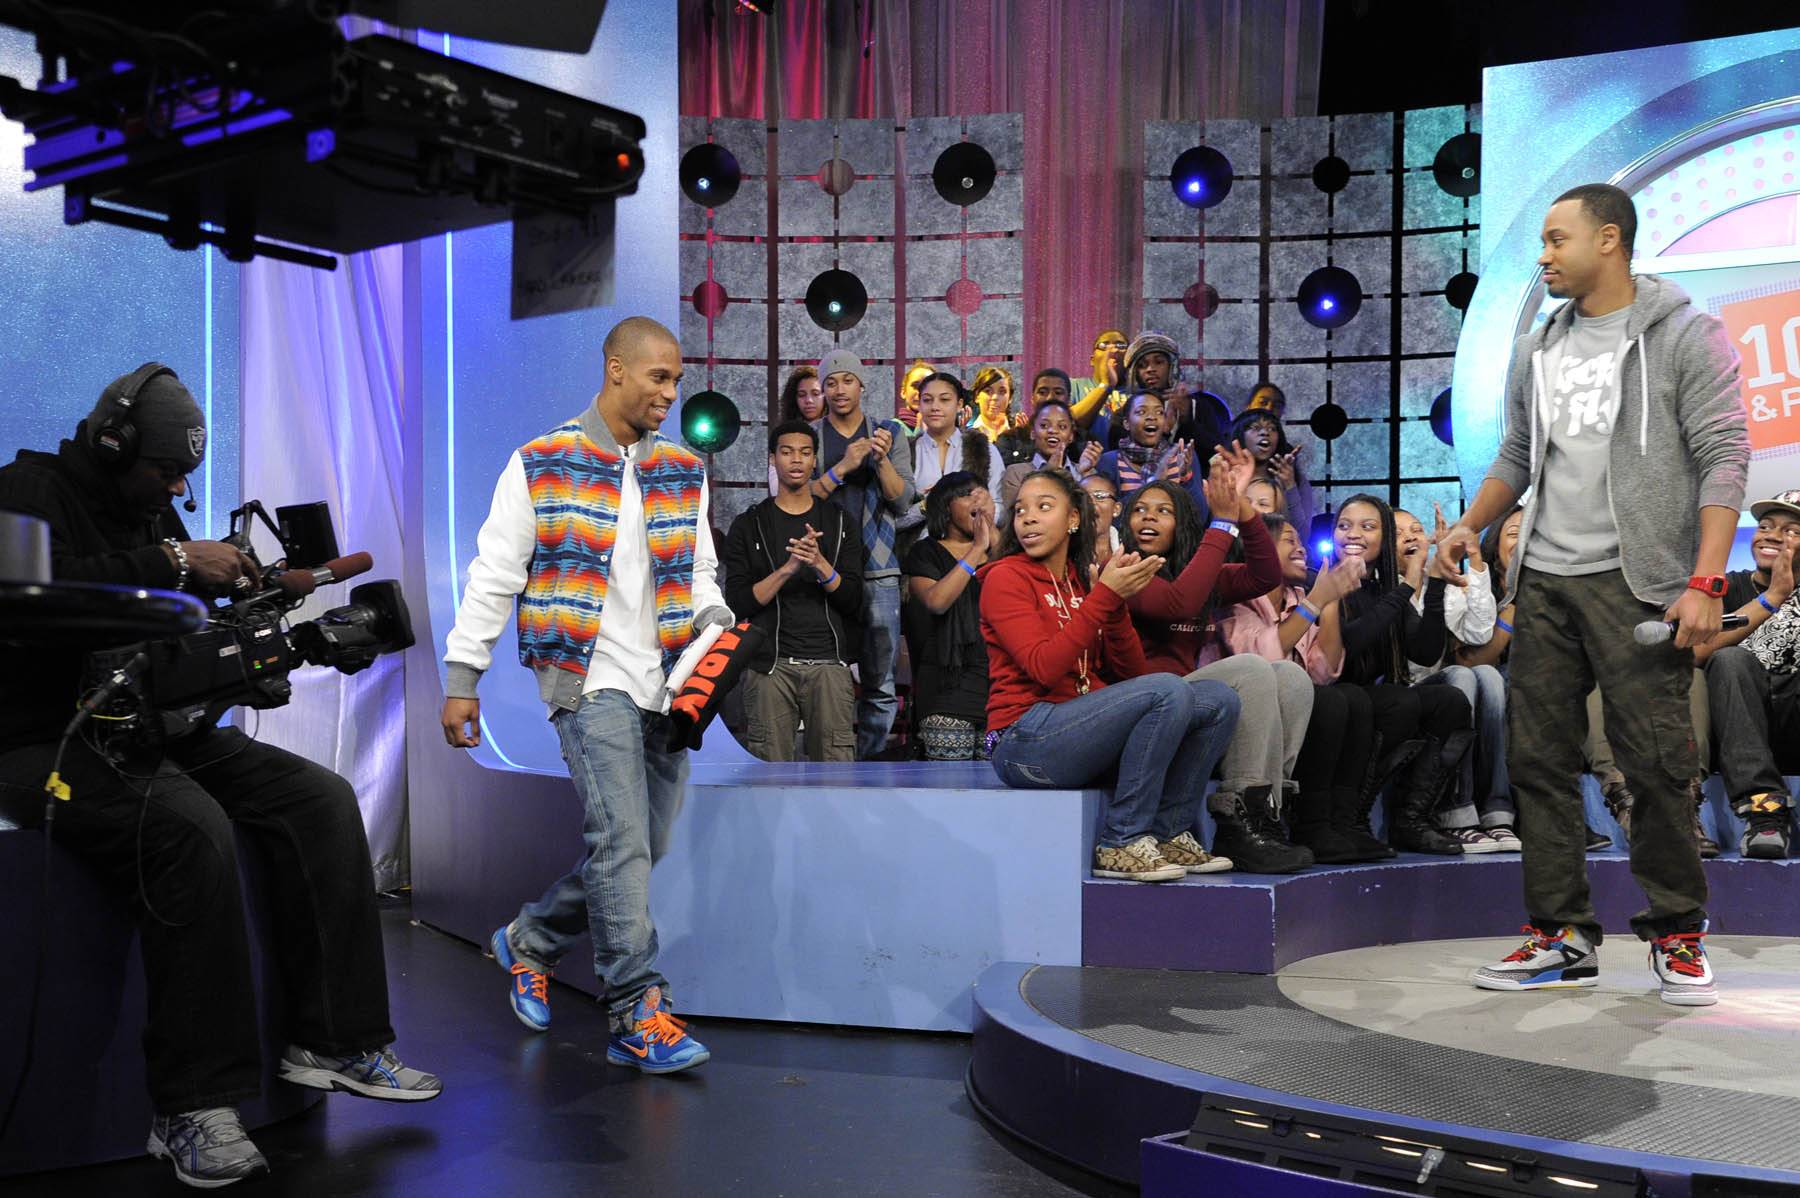 Come on Down - NY Giants wide receiver Victor Cruz takes the stage at 106 & Park, January 26, 2012. (Photo: John Ricard / BET)